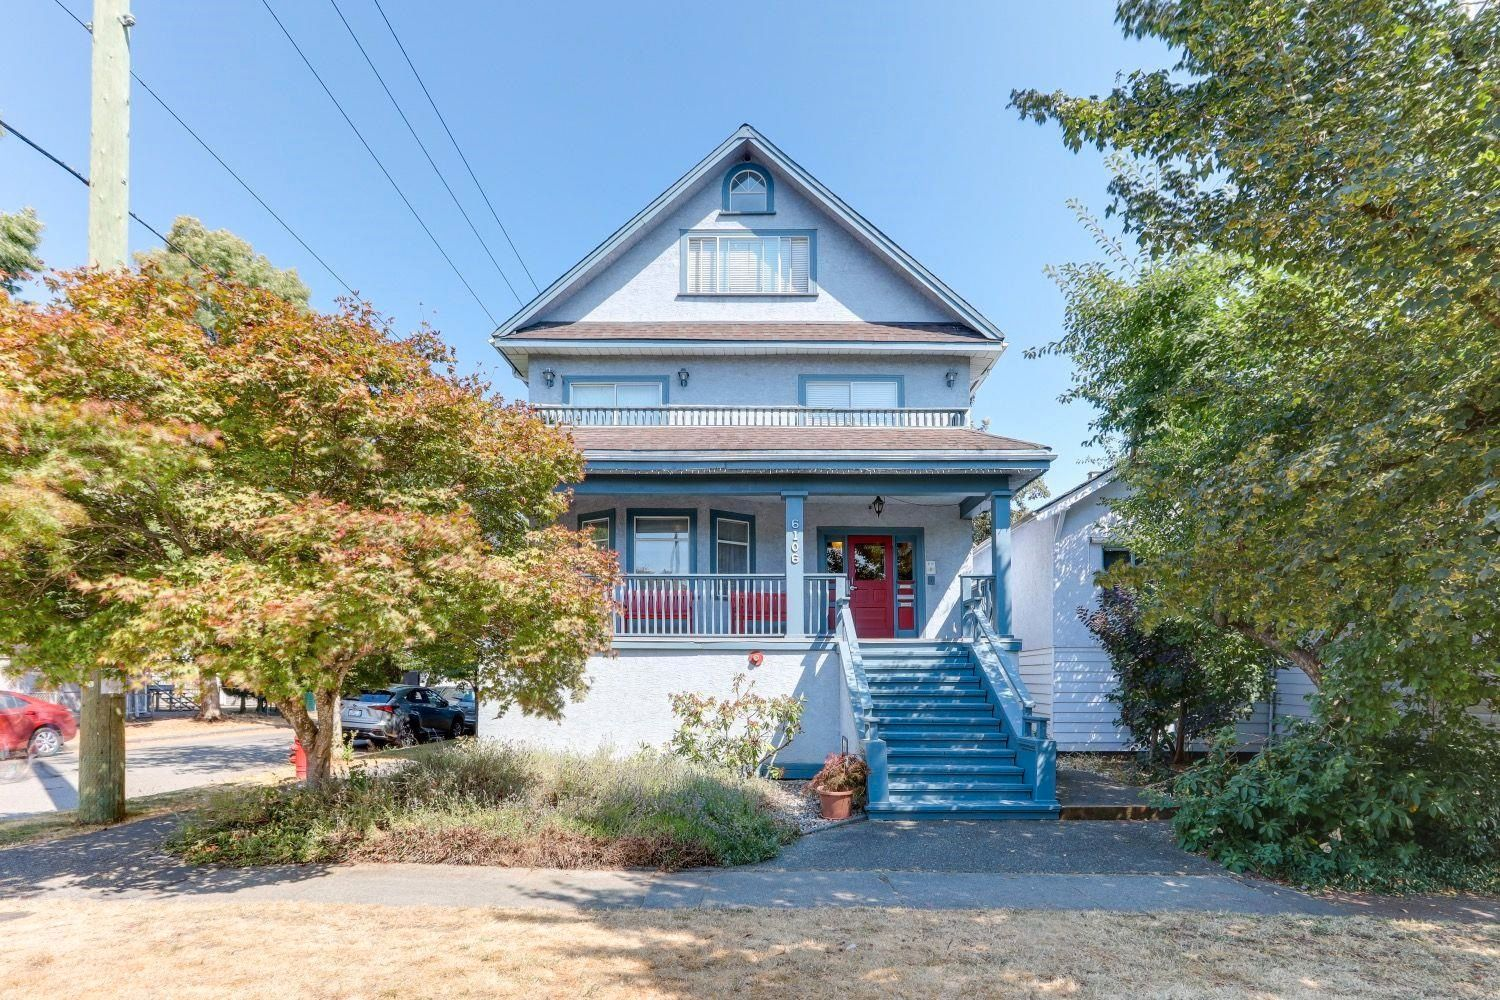 Main Photo: 6106 CHESTER Street in Vancouver: Fraser VE Multifamily for sale (Vancouver East)  : MLS®# R2613965